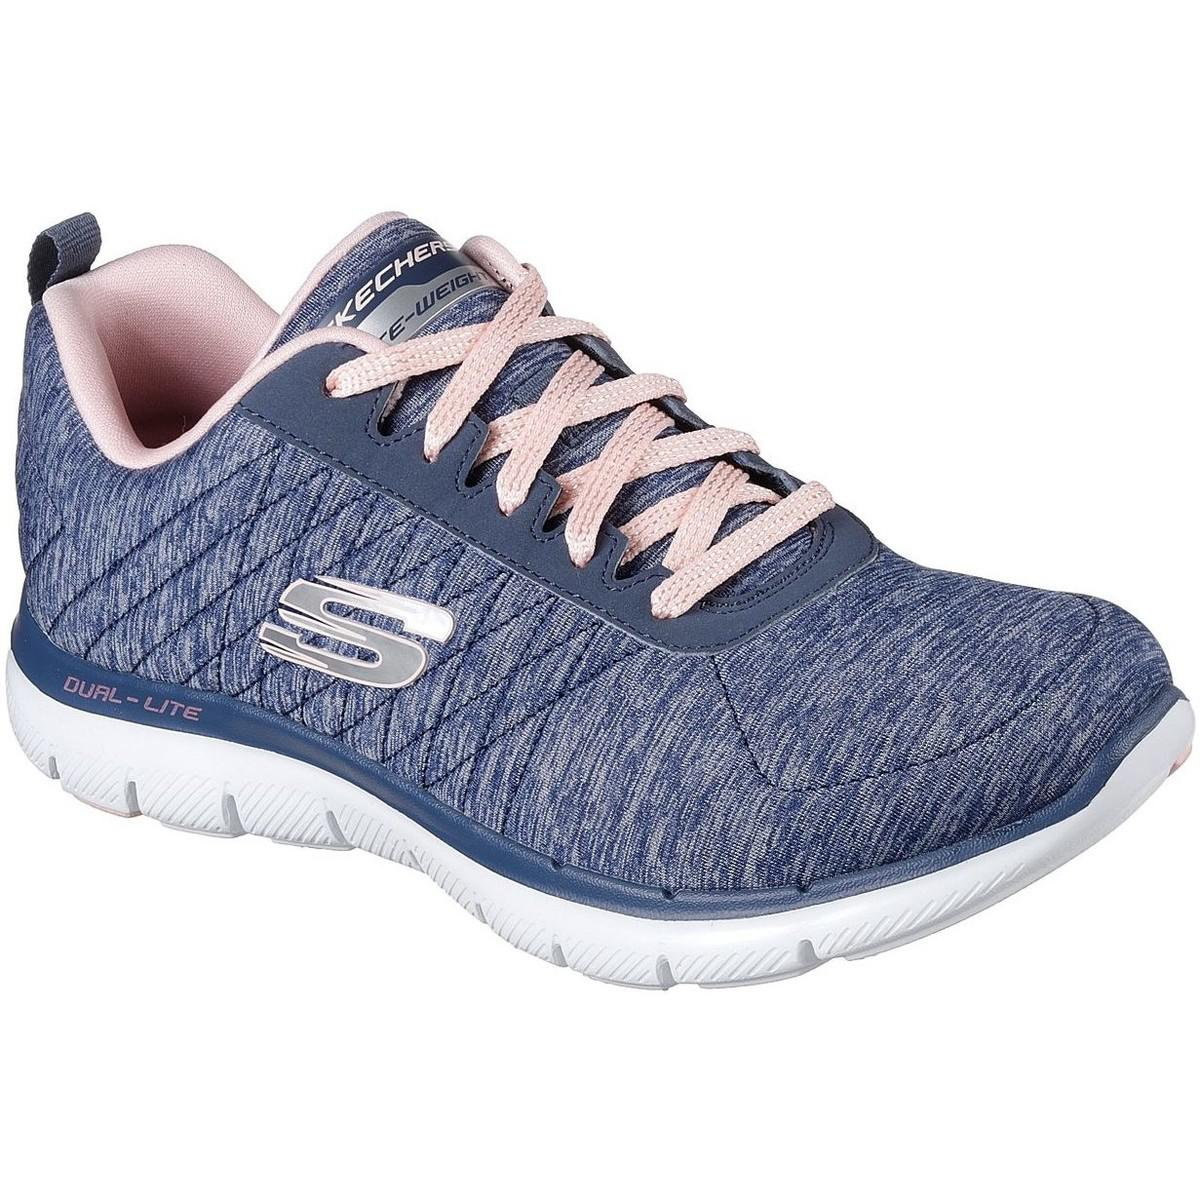 Skechers Rubber Wo Trainers Blue 12753 Nvy 12753 Nvy